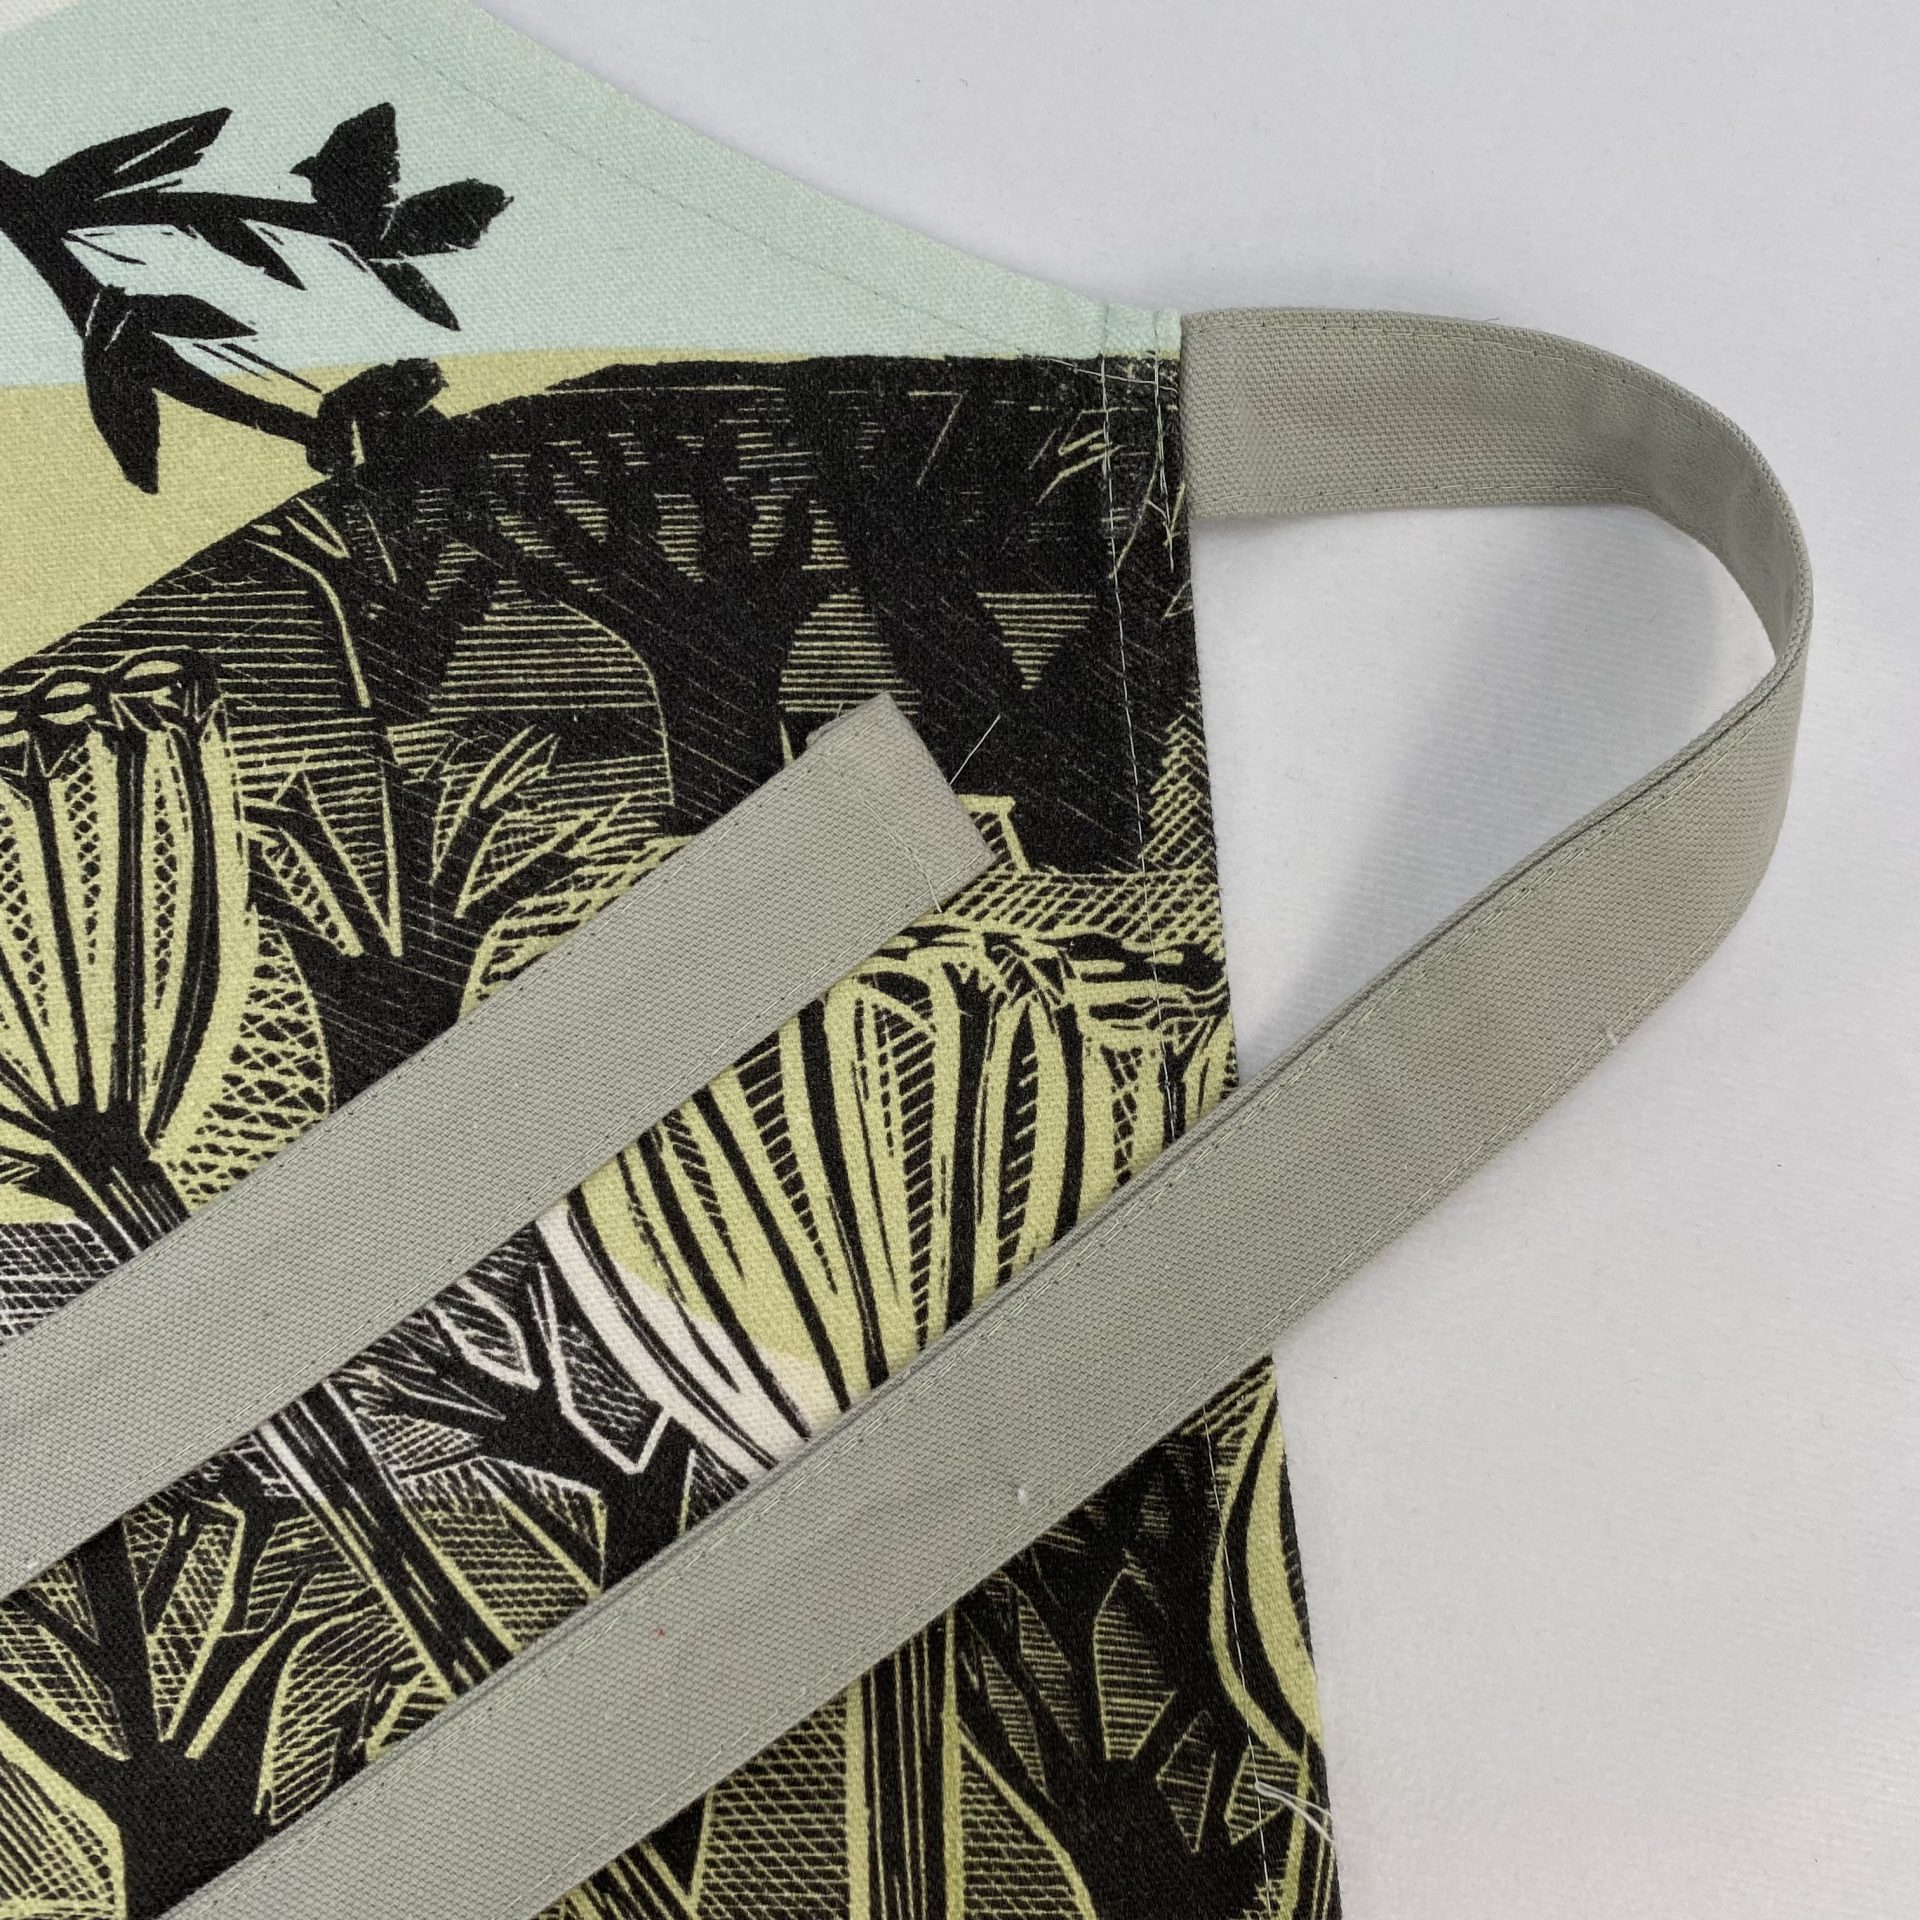 Screen printed textile merchandise for visitor attractions by Paul Bristow